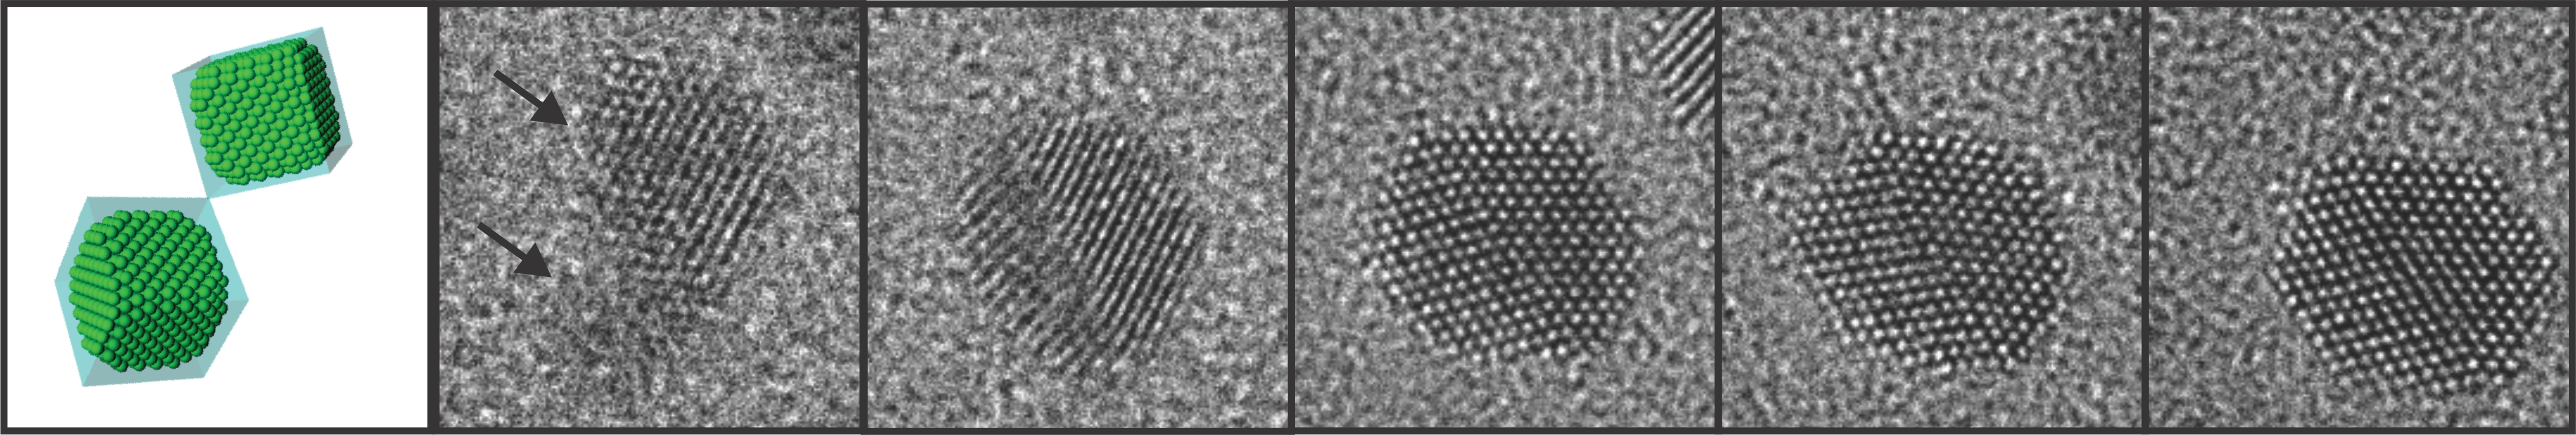 High-resolution Atomic Imaging of Specimens in Liquid Observed by Transmission Electron Microscopes Using Graphene Liquid Cells 이미지